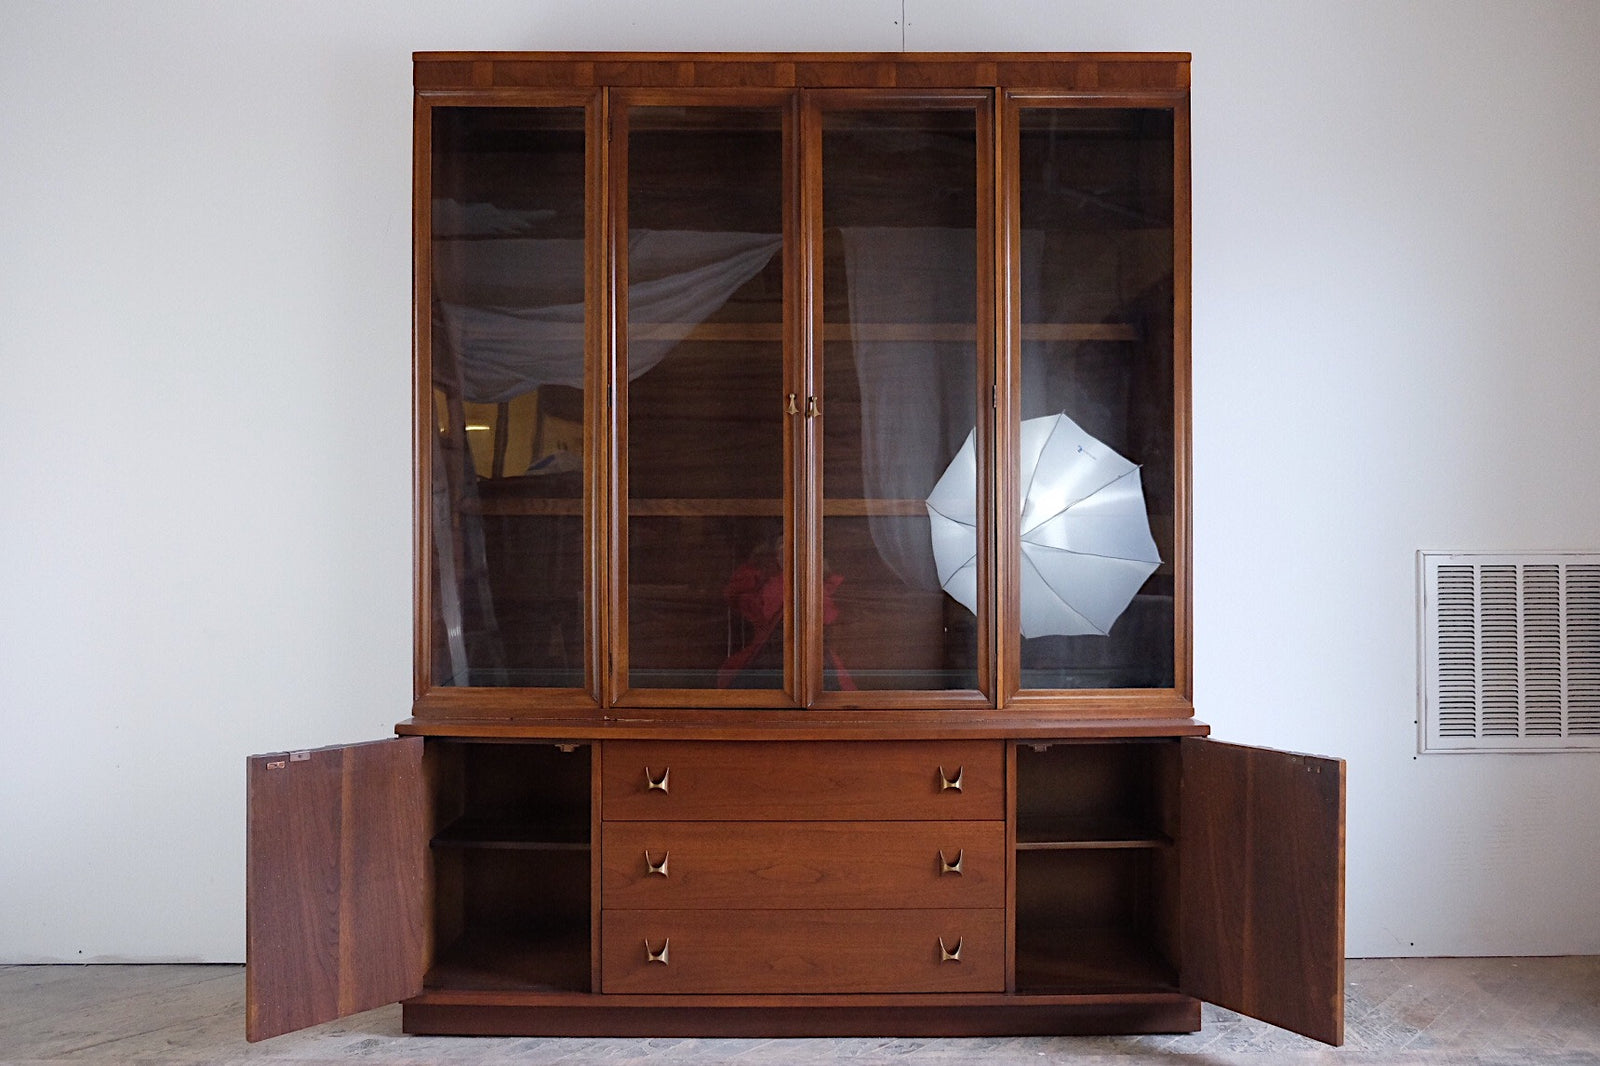 Broyhill Brasilia China Display Cabinet with Lighting Brass Geometric Pulls Three Drawers Display Cabinet Comes Off